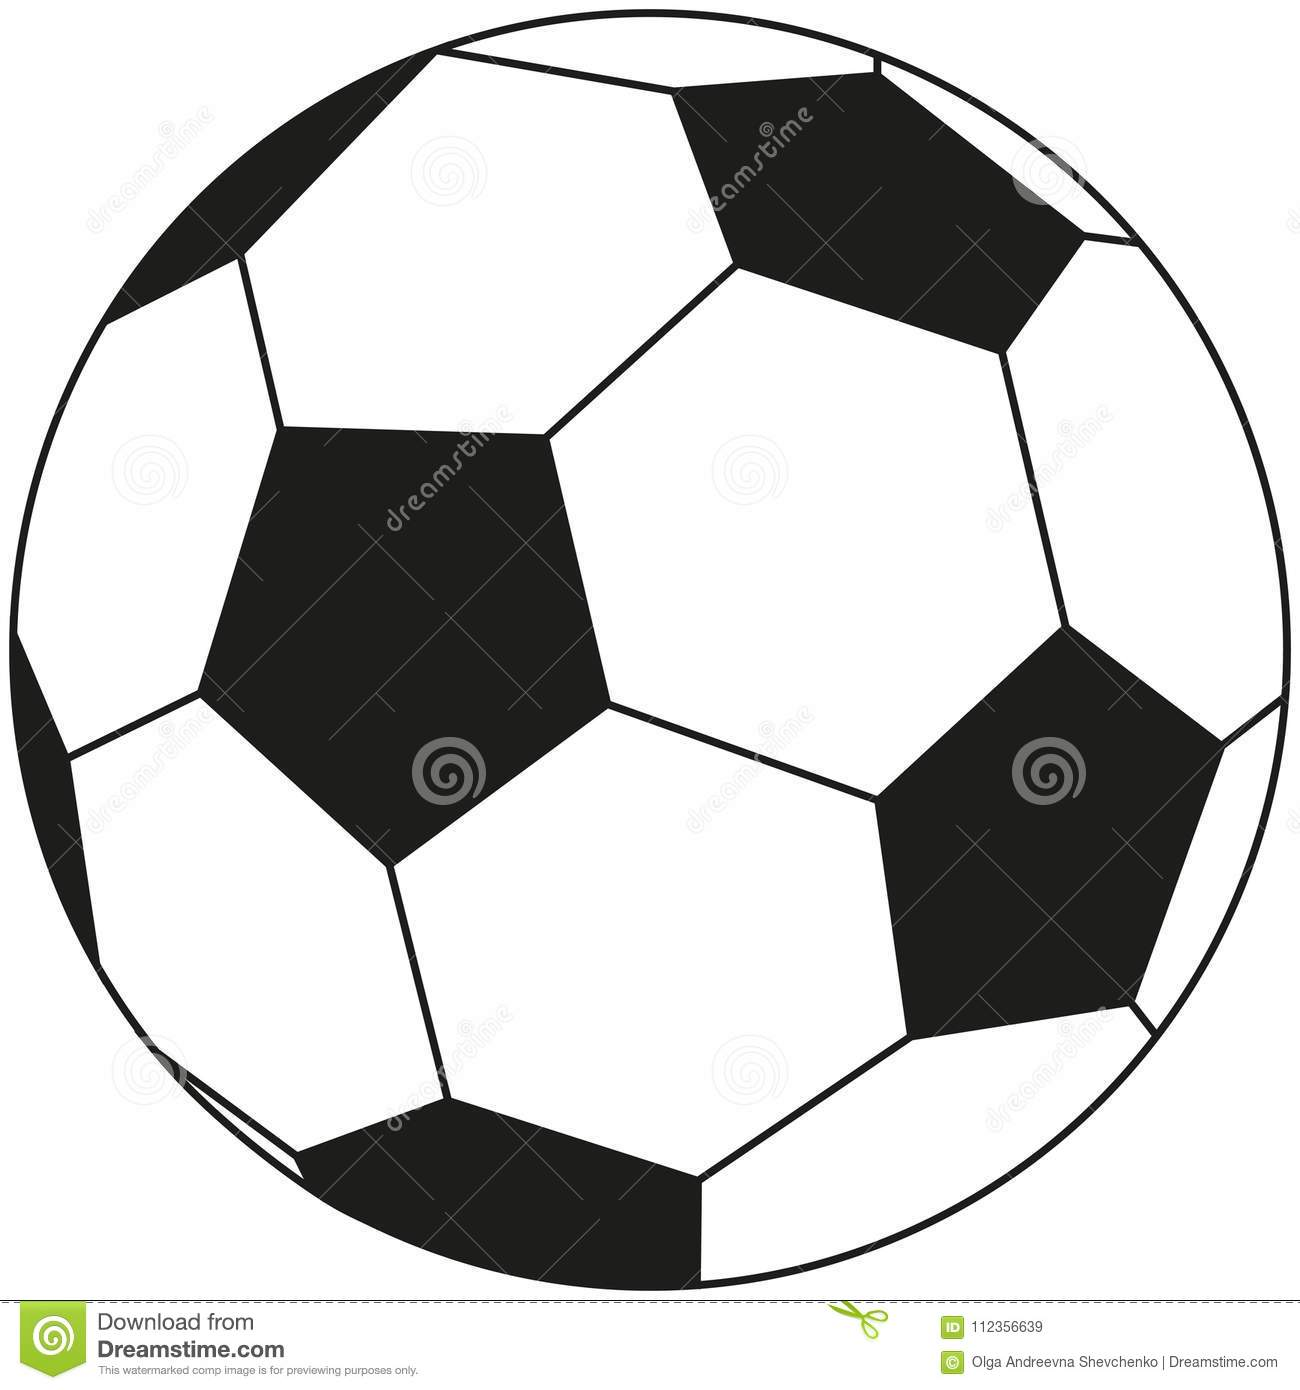 Line art black and white soccer ball icon